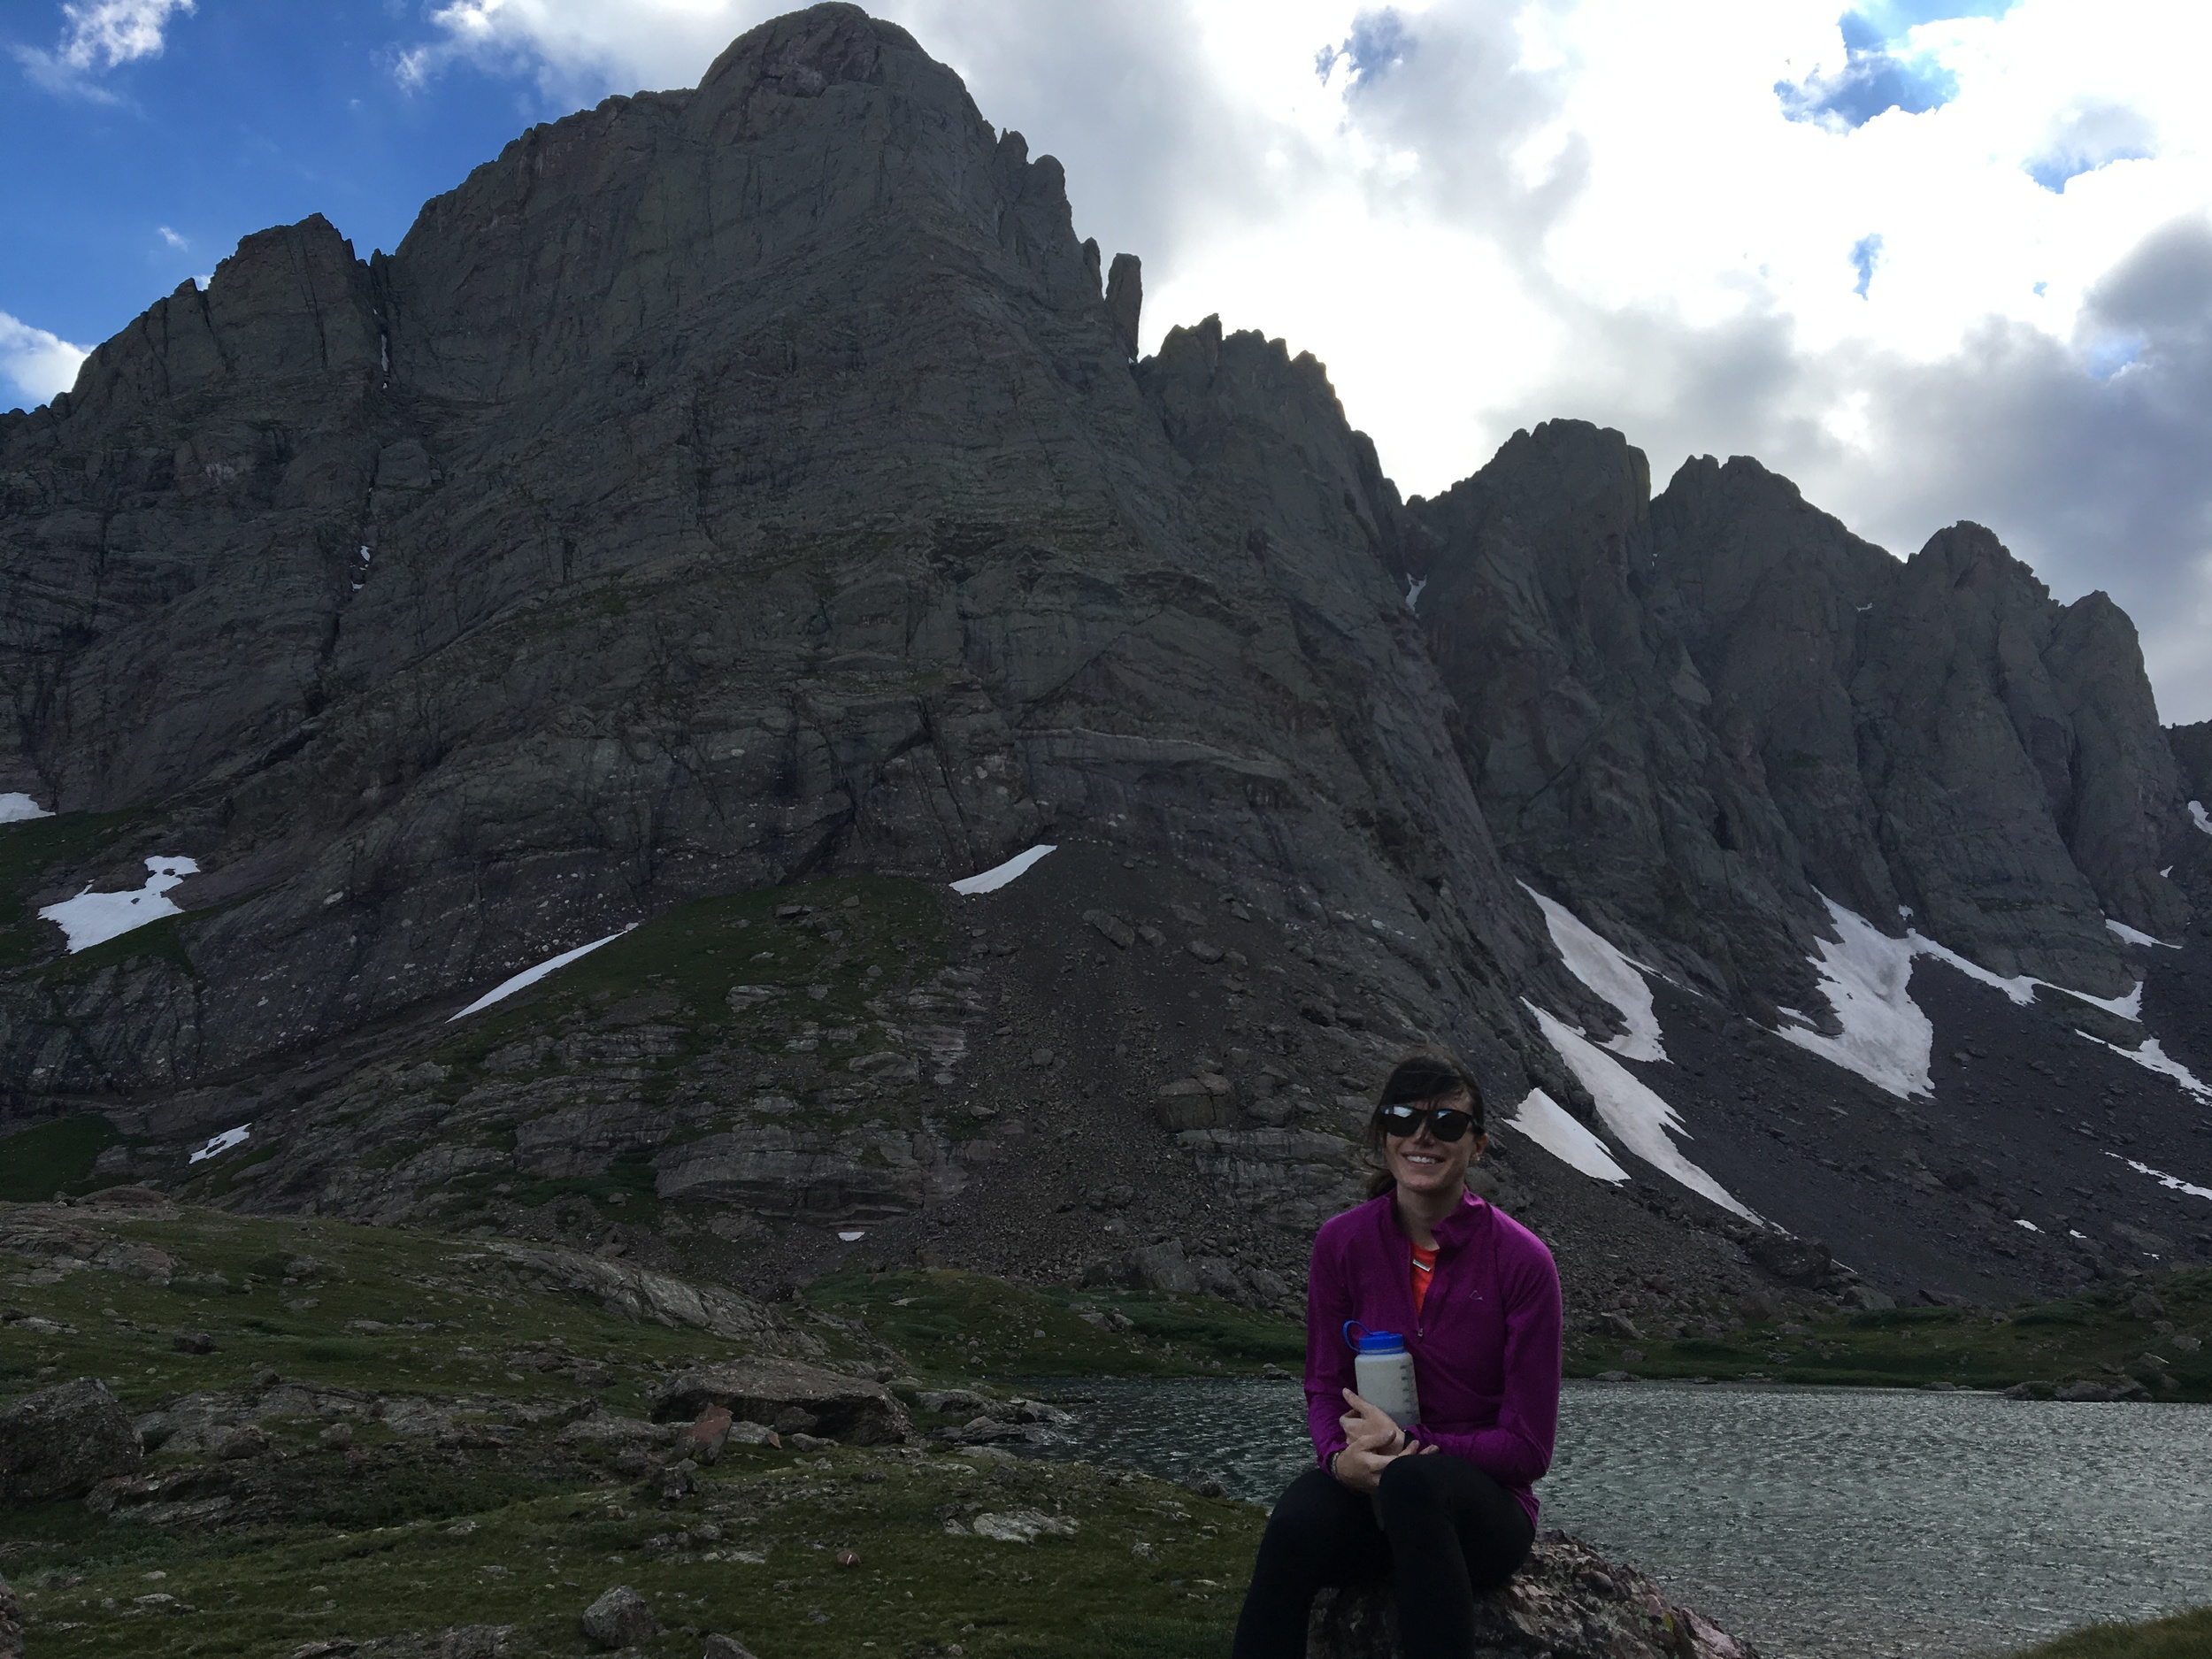 A windy afternoon hike up to the Upper Colony Lake